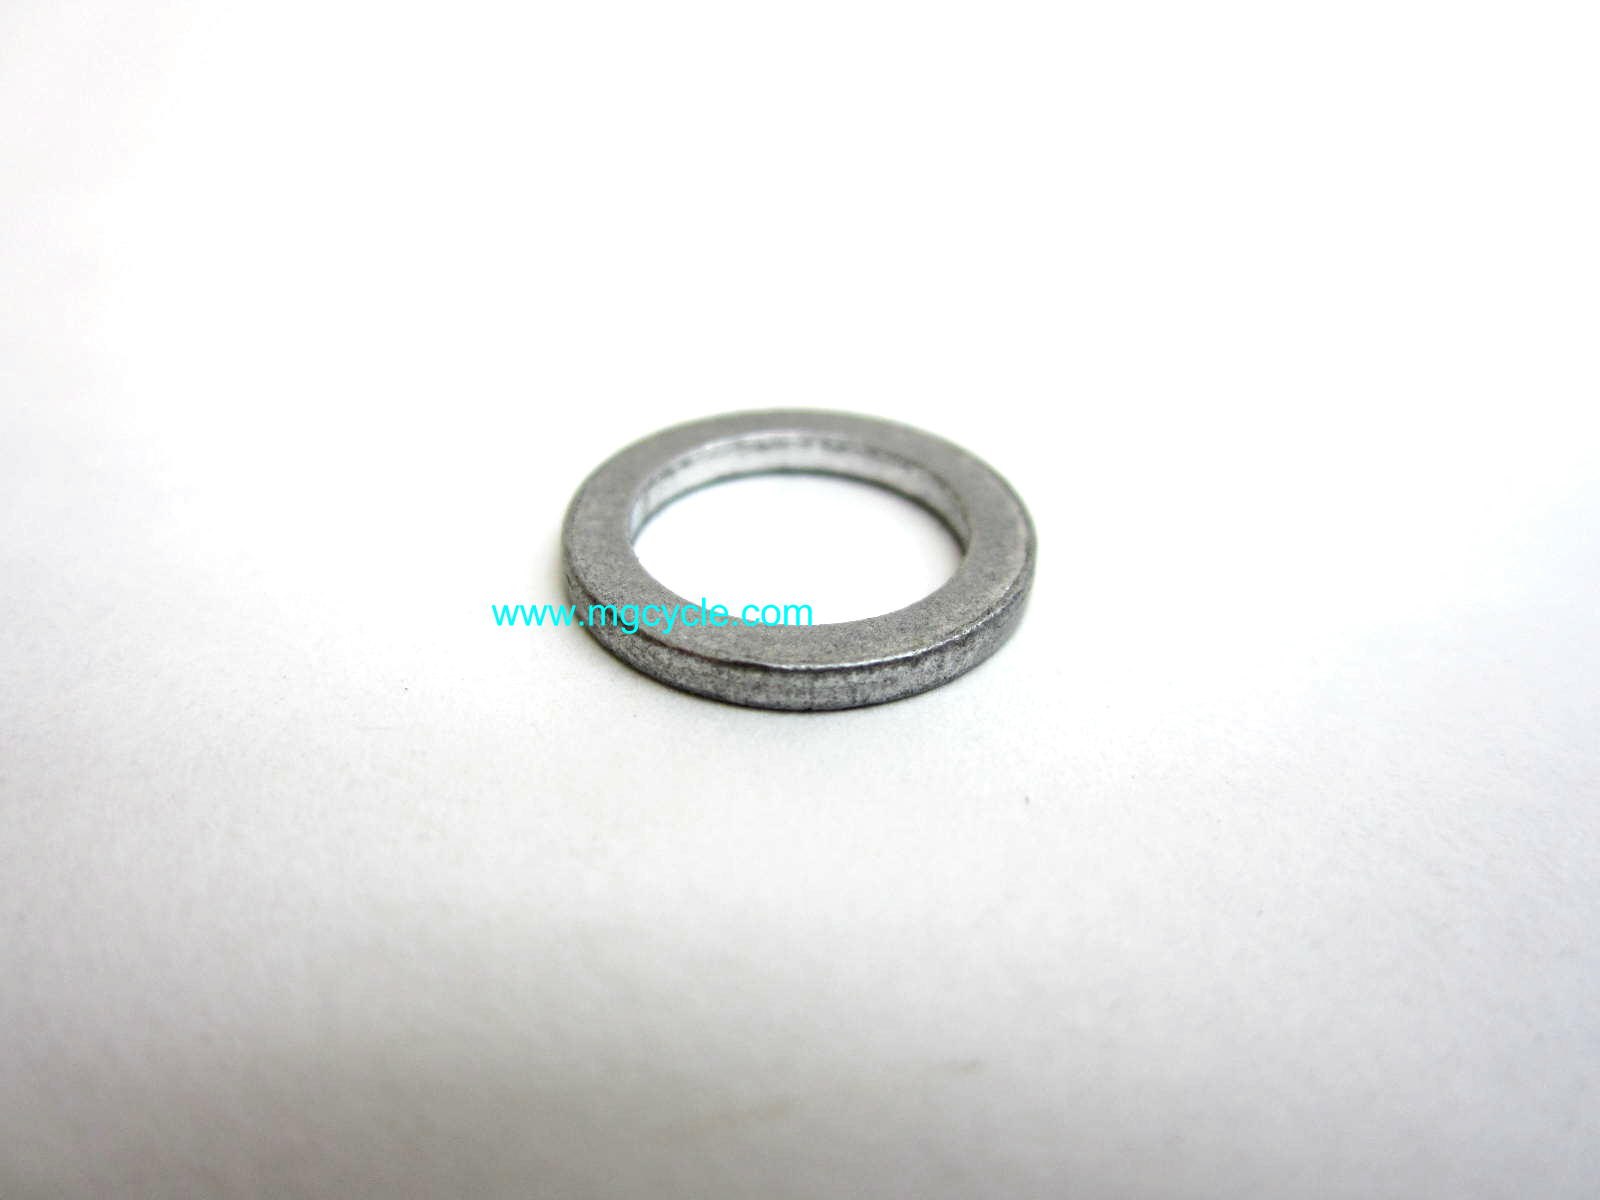 10mm aluminum sealing washer